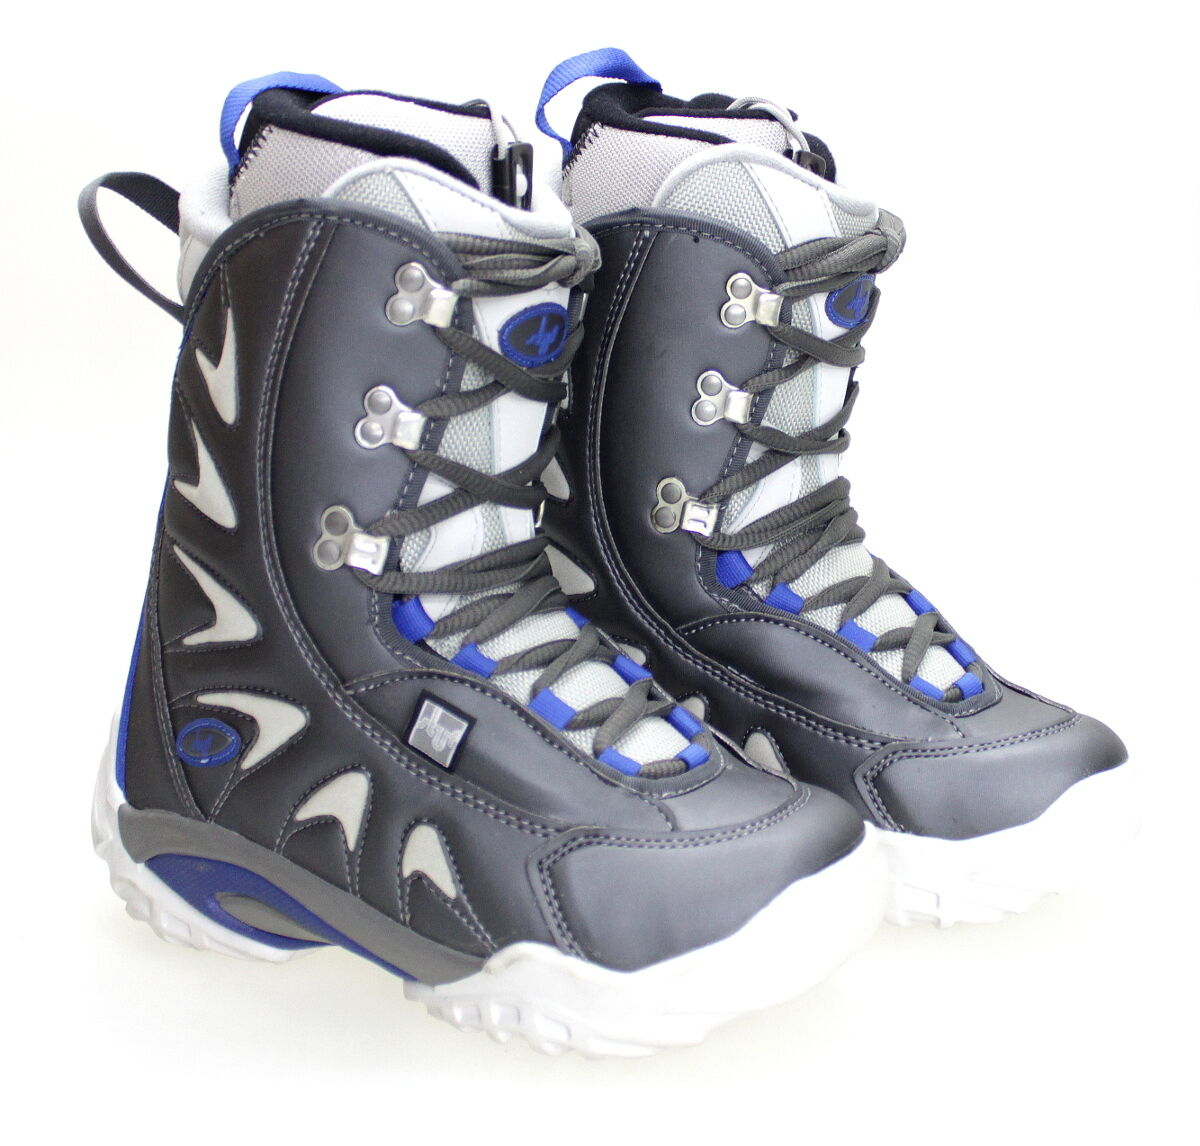 Stuf Soft Boot Unisex Size 37 Mo 24.0 Snowboard shoes Unisex Snowboard Boat S-N